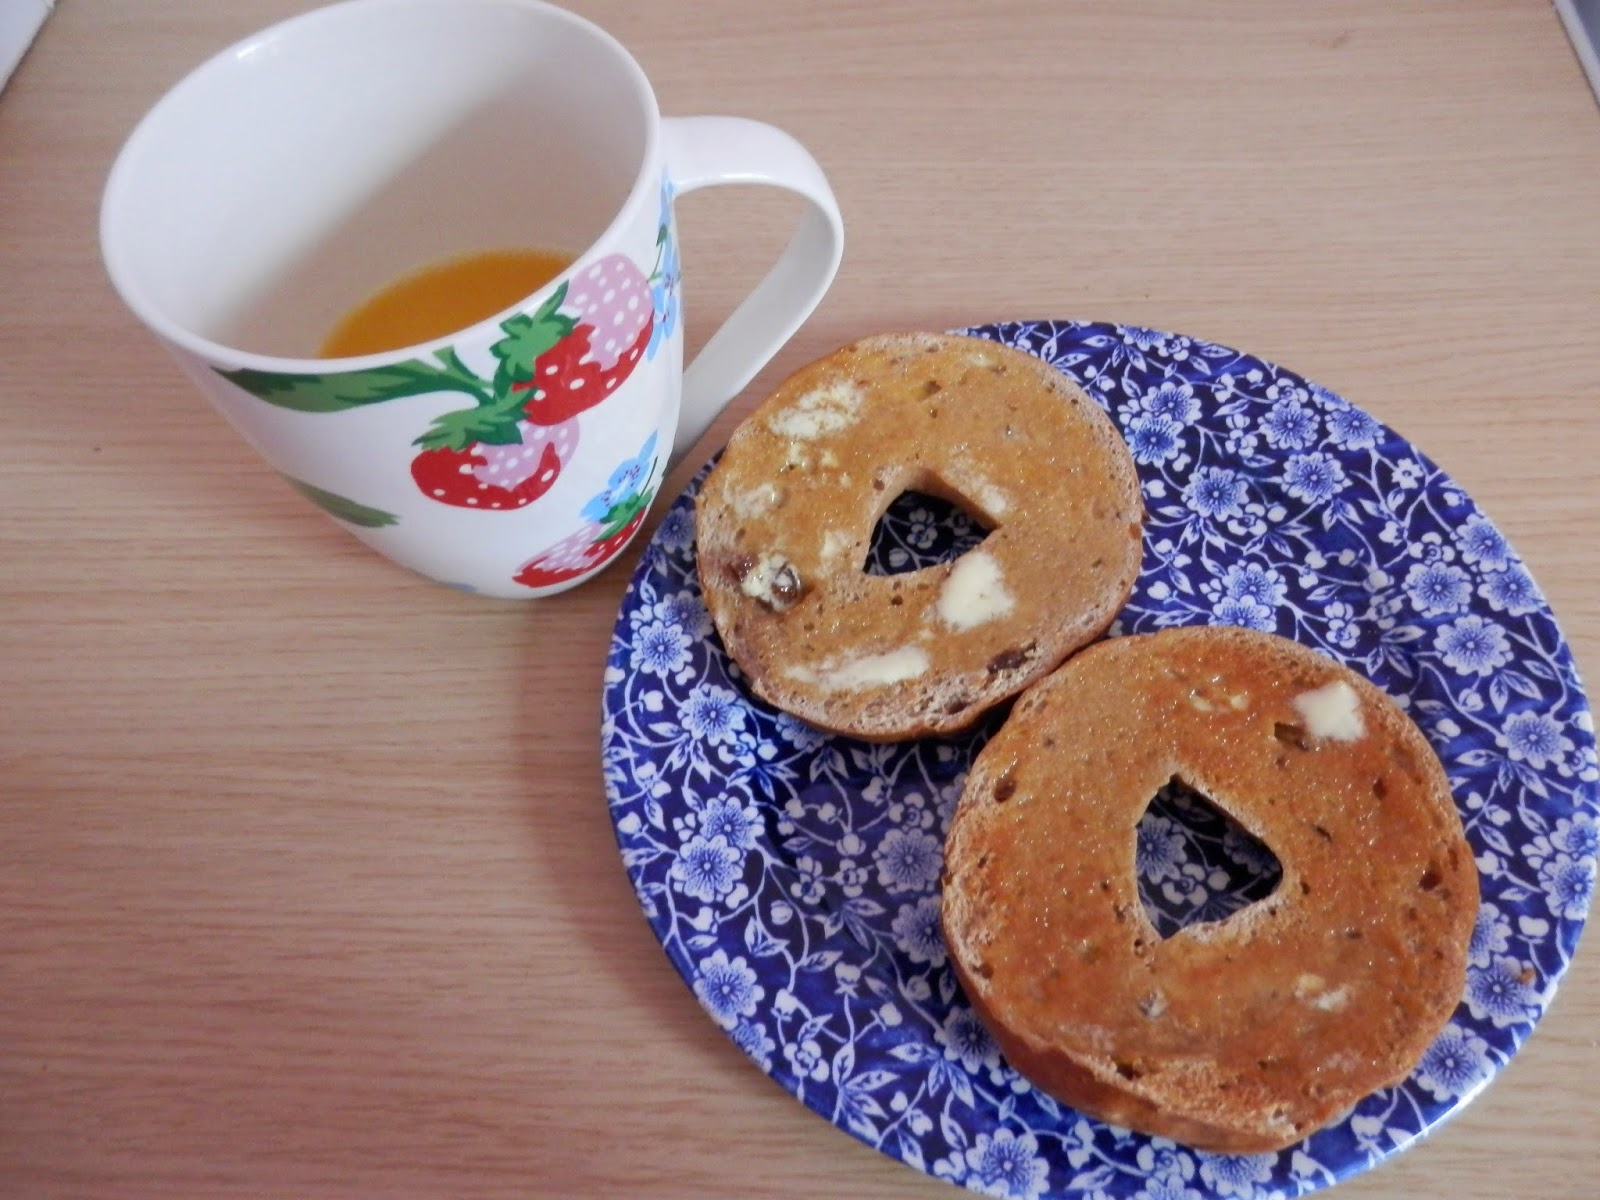 What do vegans eat? Cinnamon raisin bagels, spread with Pure vegan margarine, with OJ for my breakfast.  These bagels are from the brand New York Bakery Co and are really yummy.